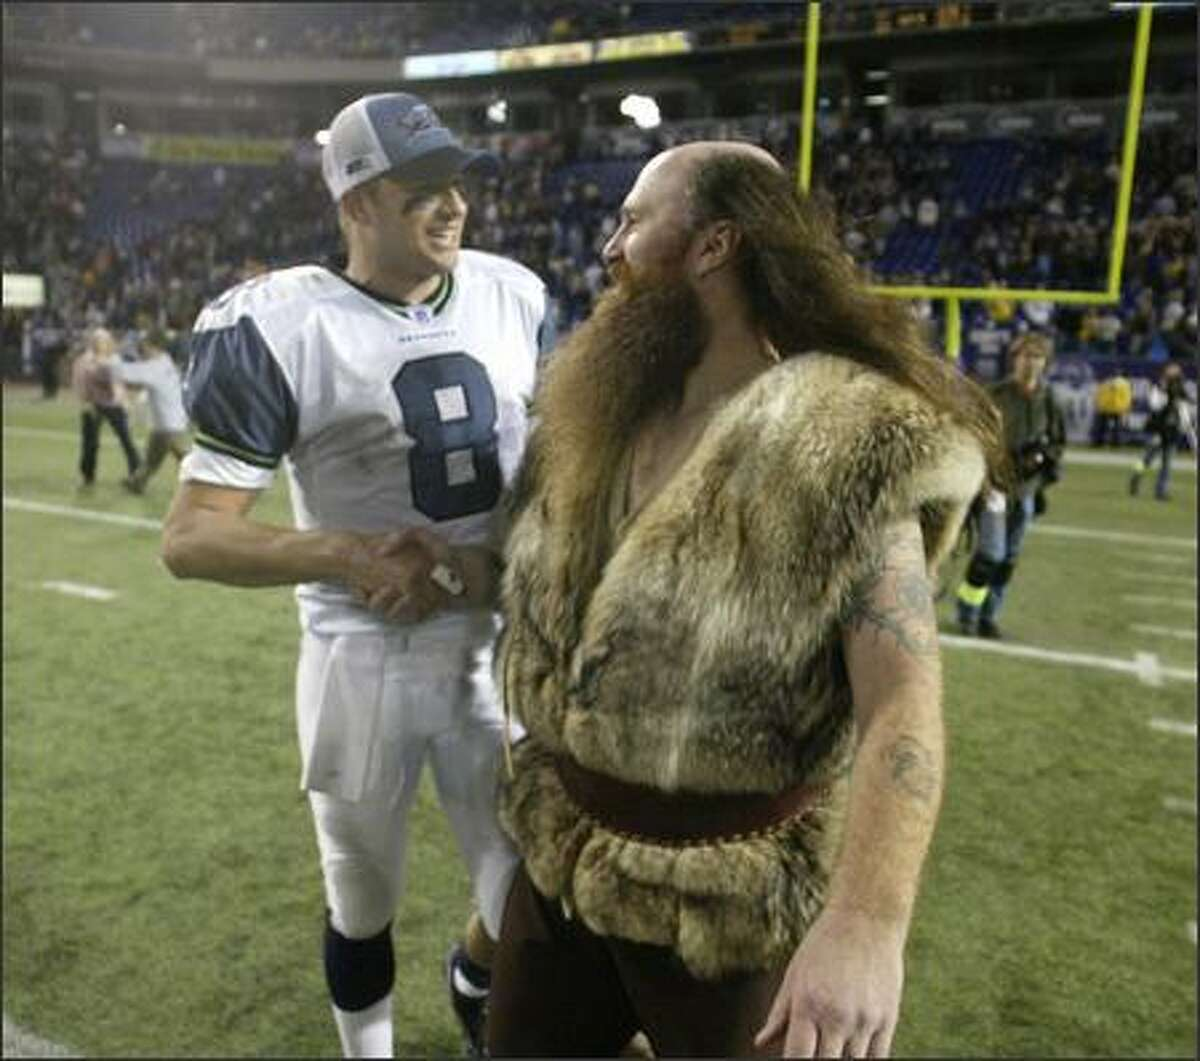 Seahawks quarterback Matt Hasselbeck shakes hands with the Minnesota Vikings' mascot, Ragnar. Hasselbeck completed 23 of 34 passes in leading the Seahawks to their 27-23 victory.